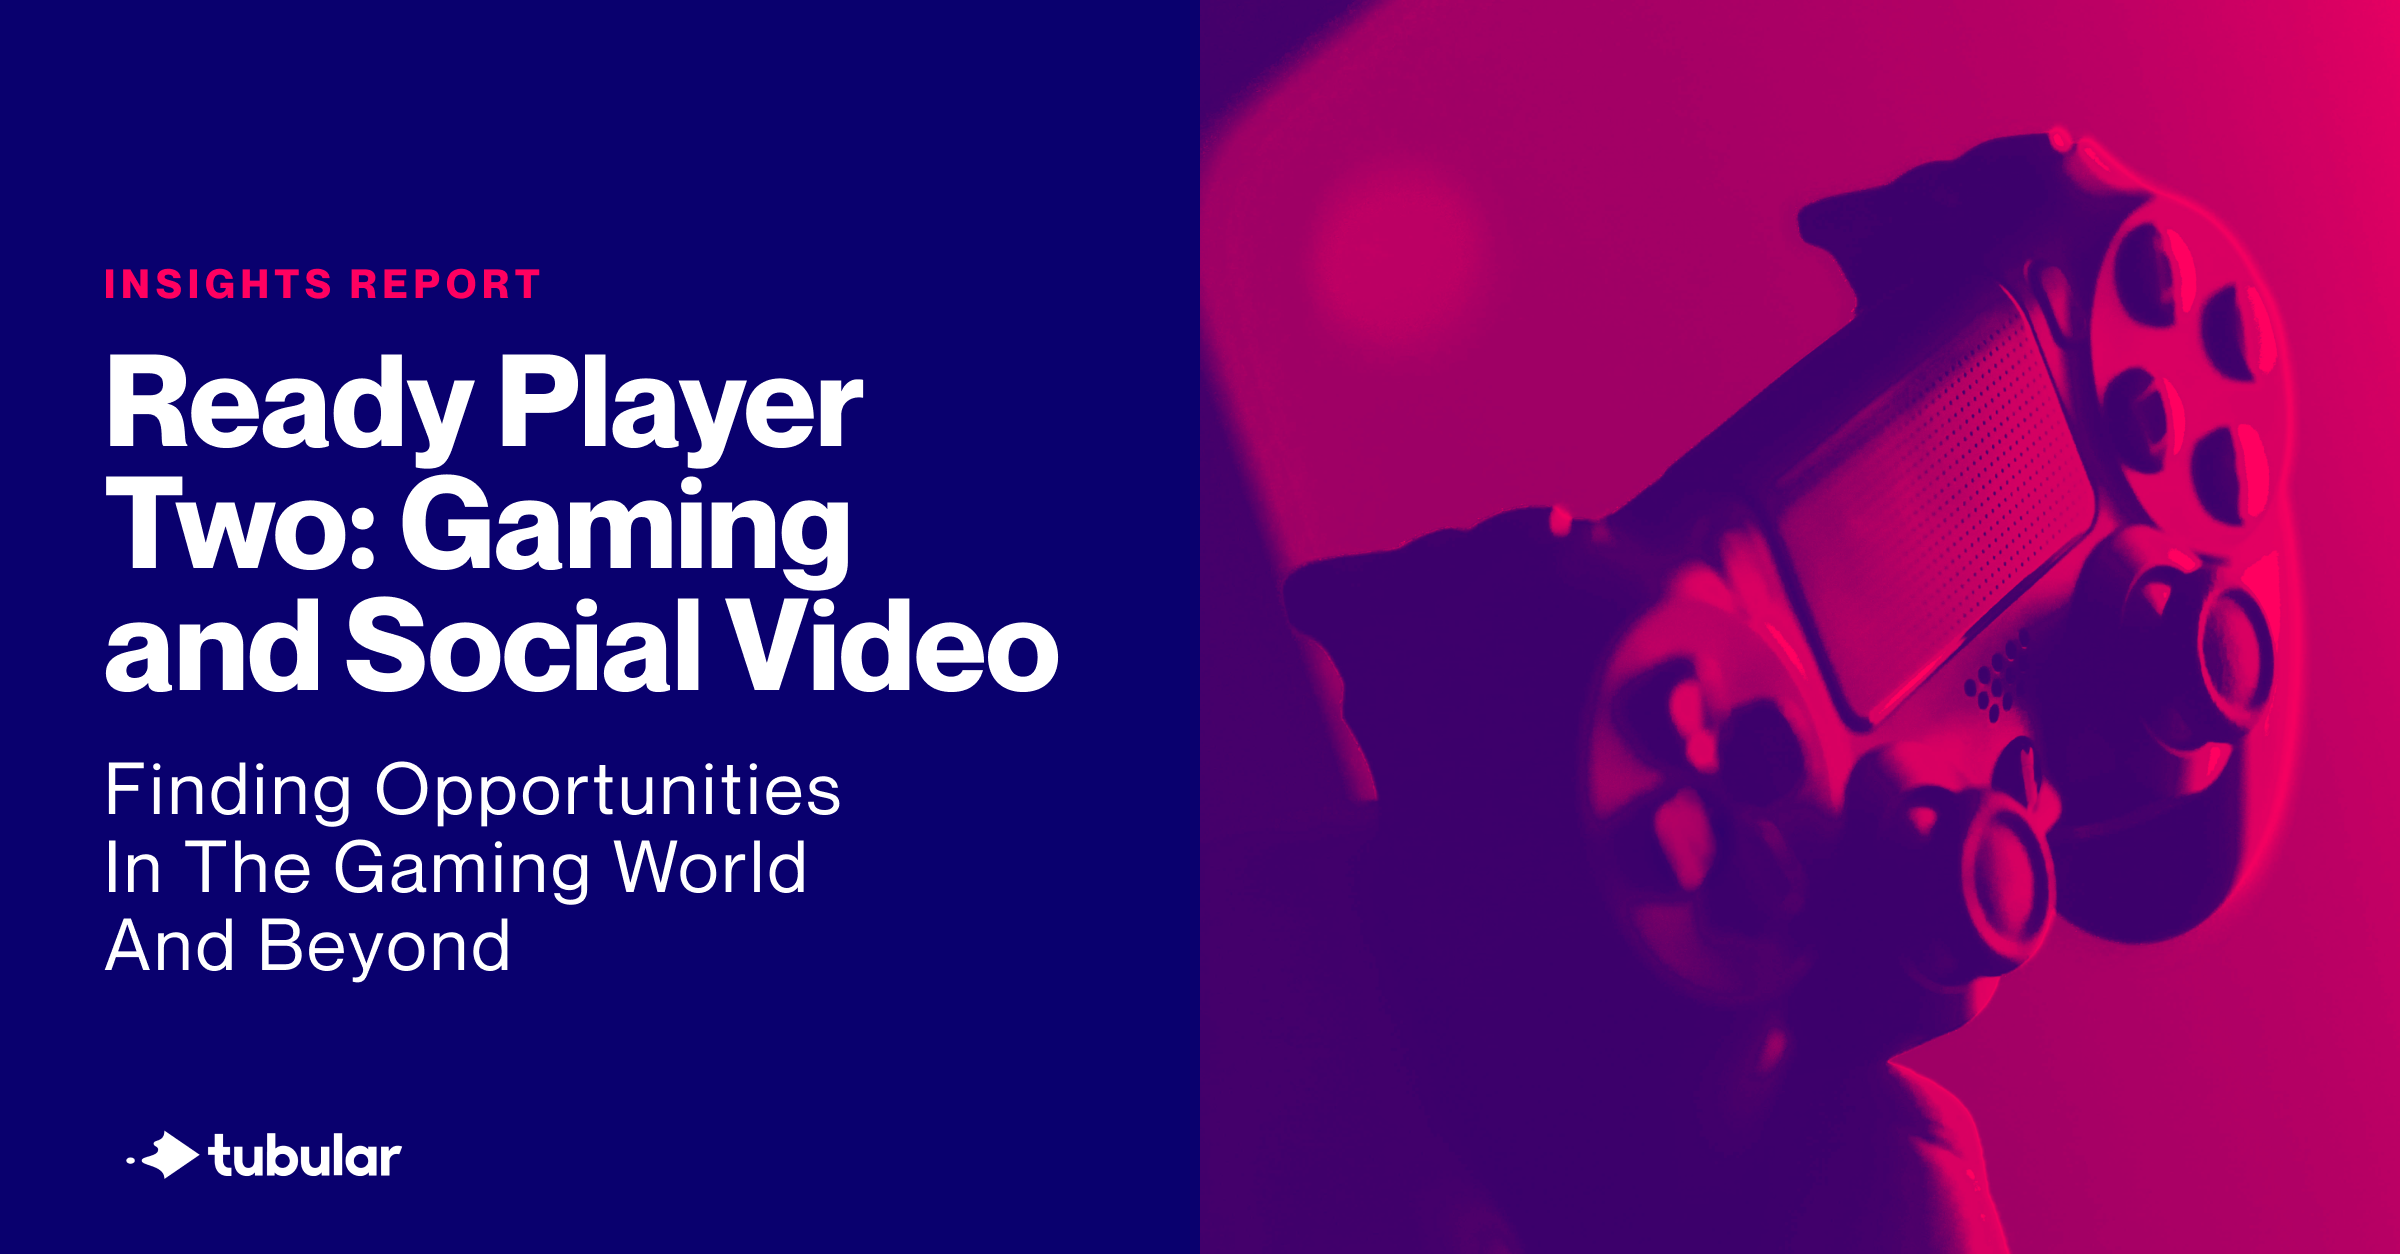 Ready Player Two: Gaming and Social Video